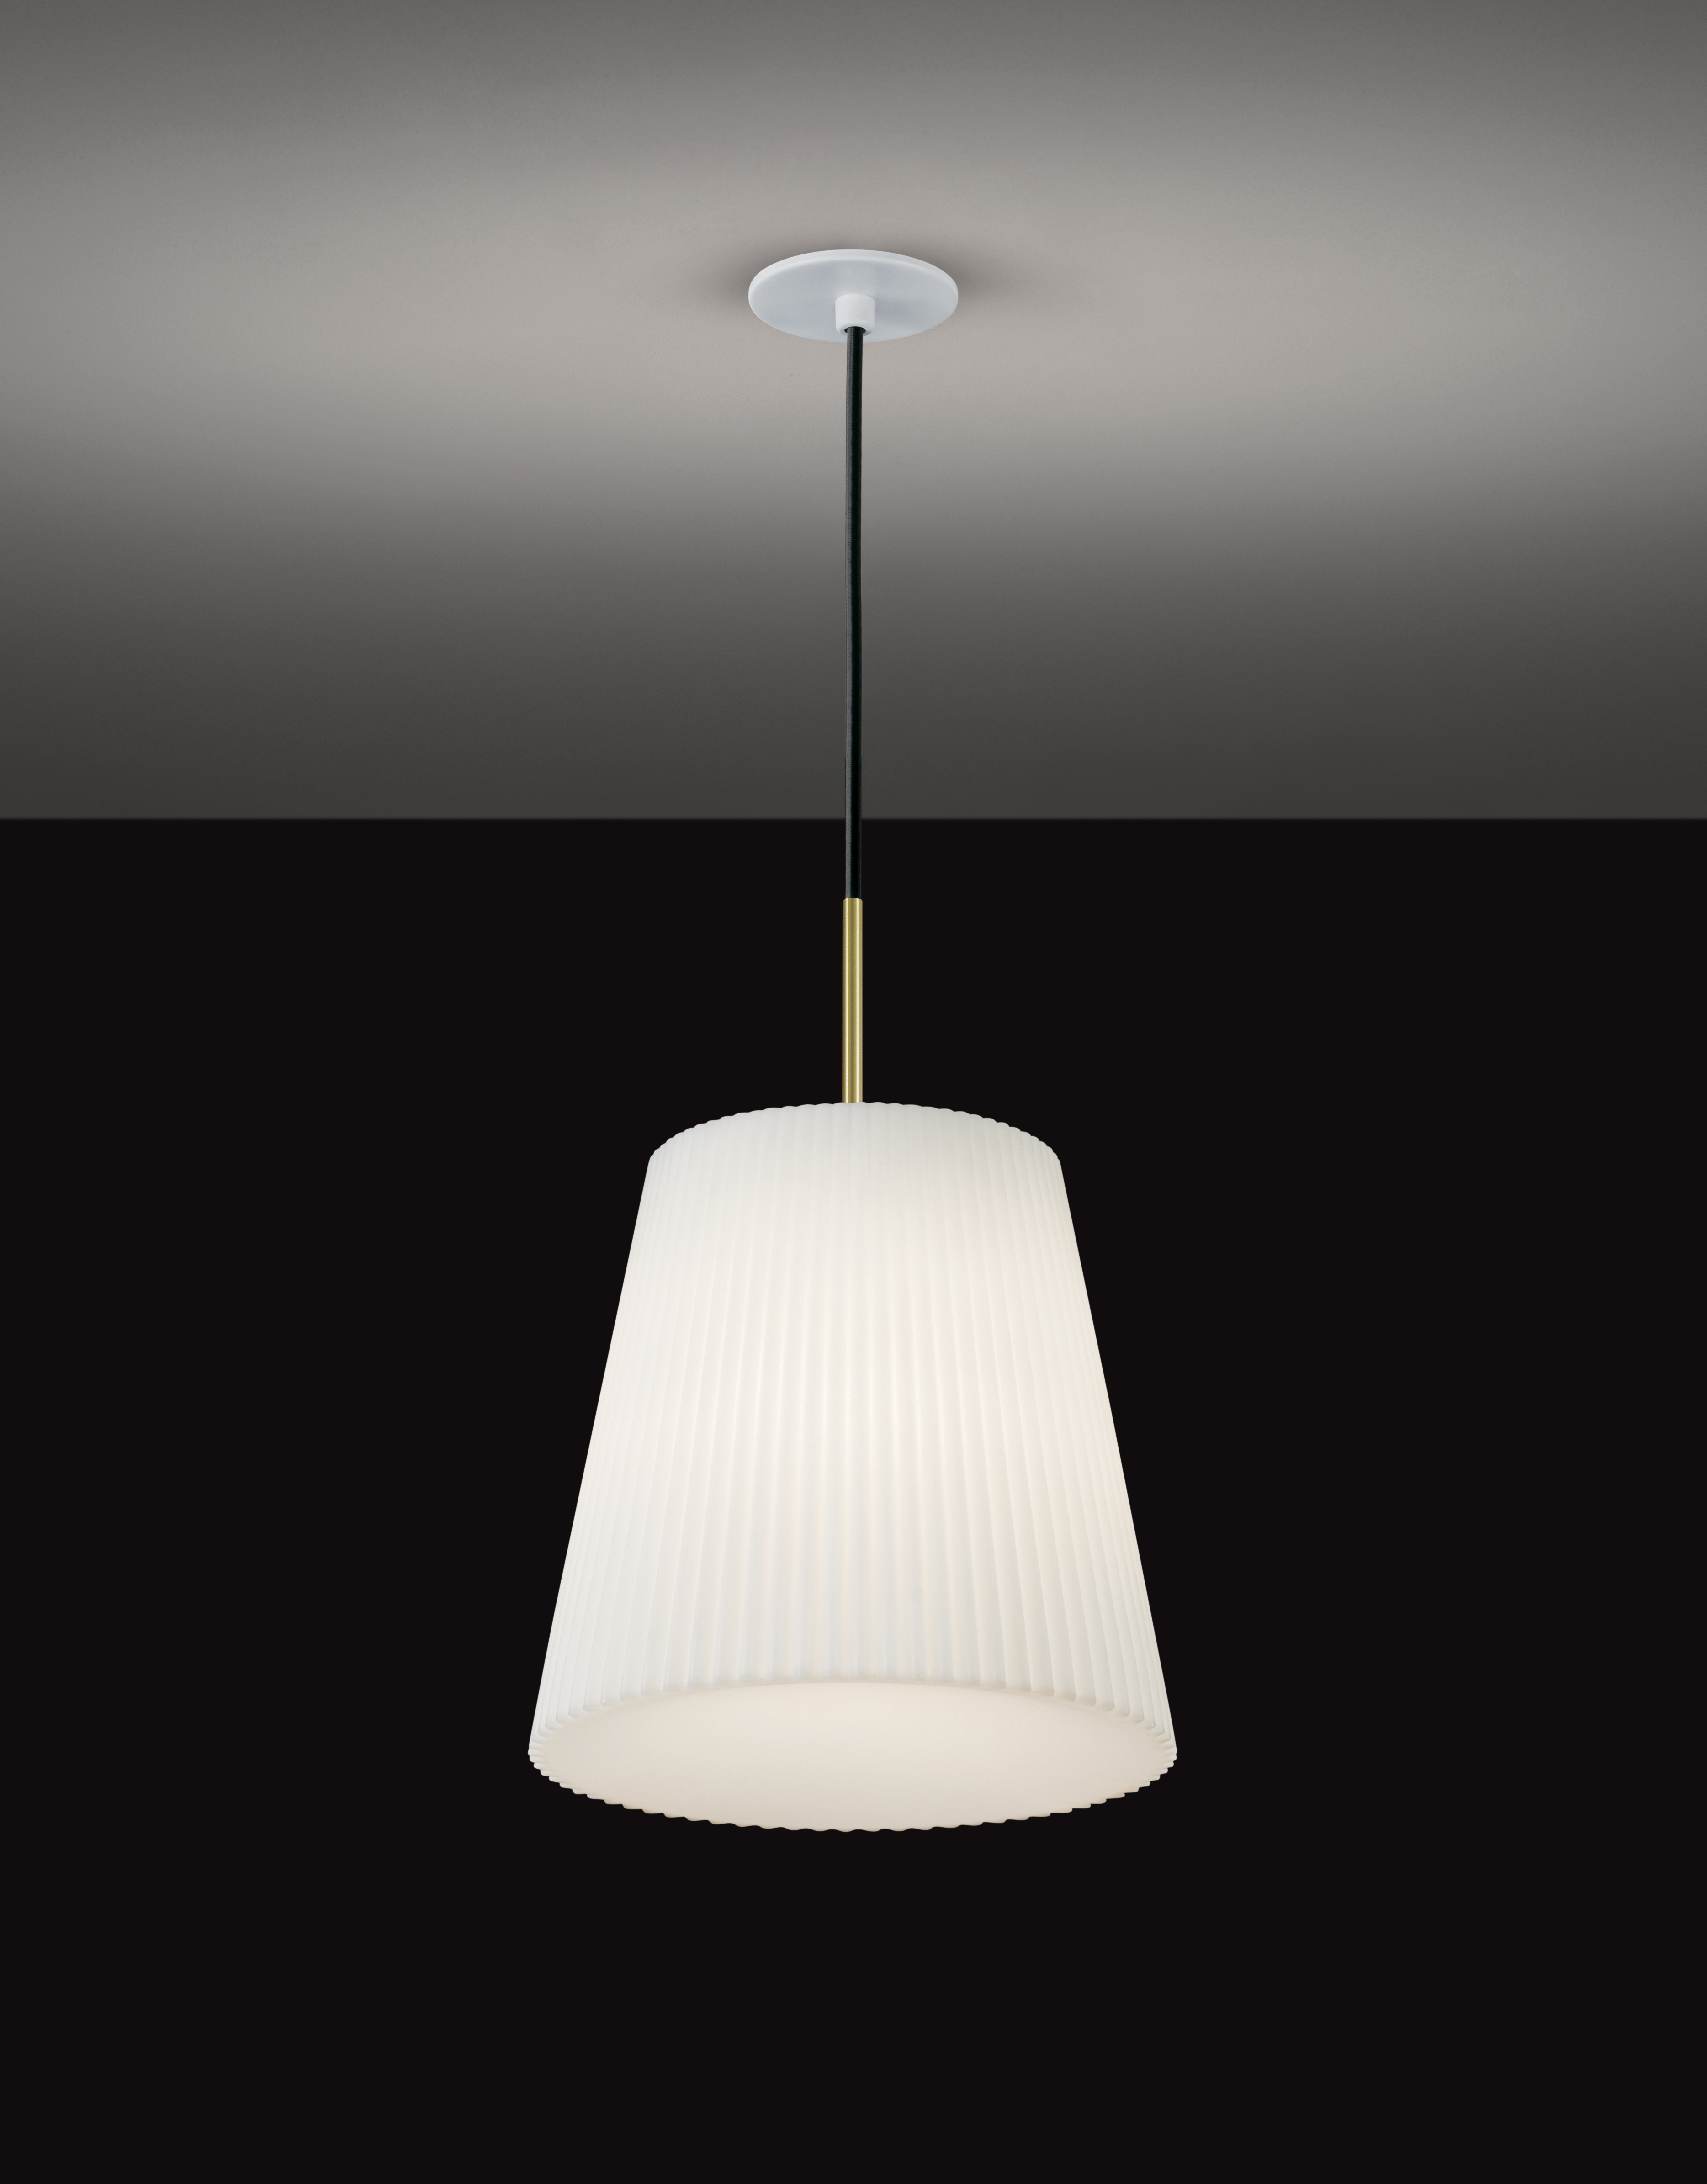 ocl lighting rep. pendant ocl lighting rep